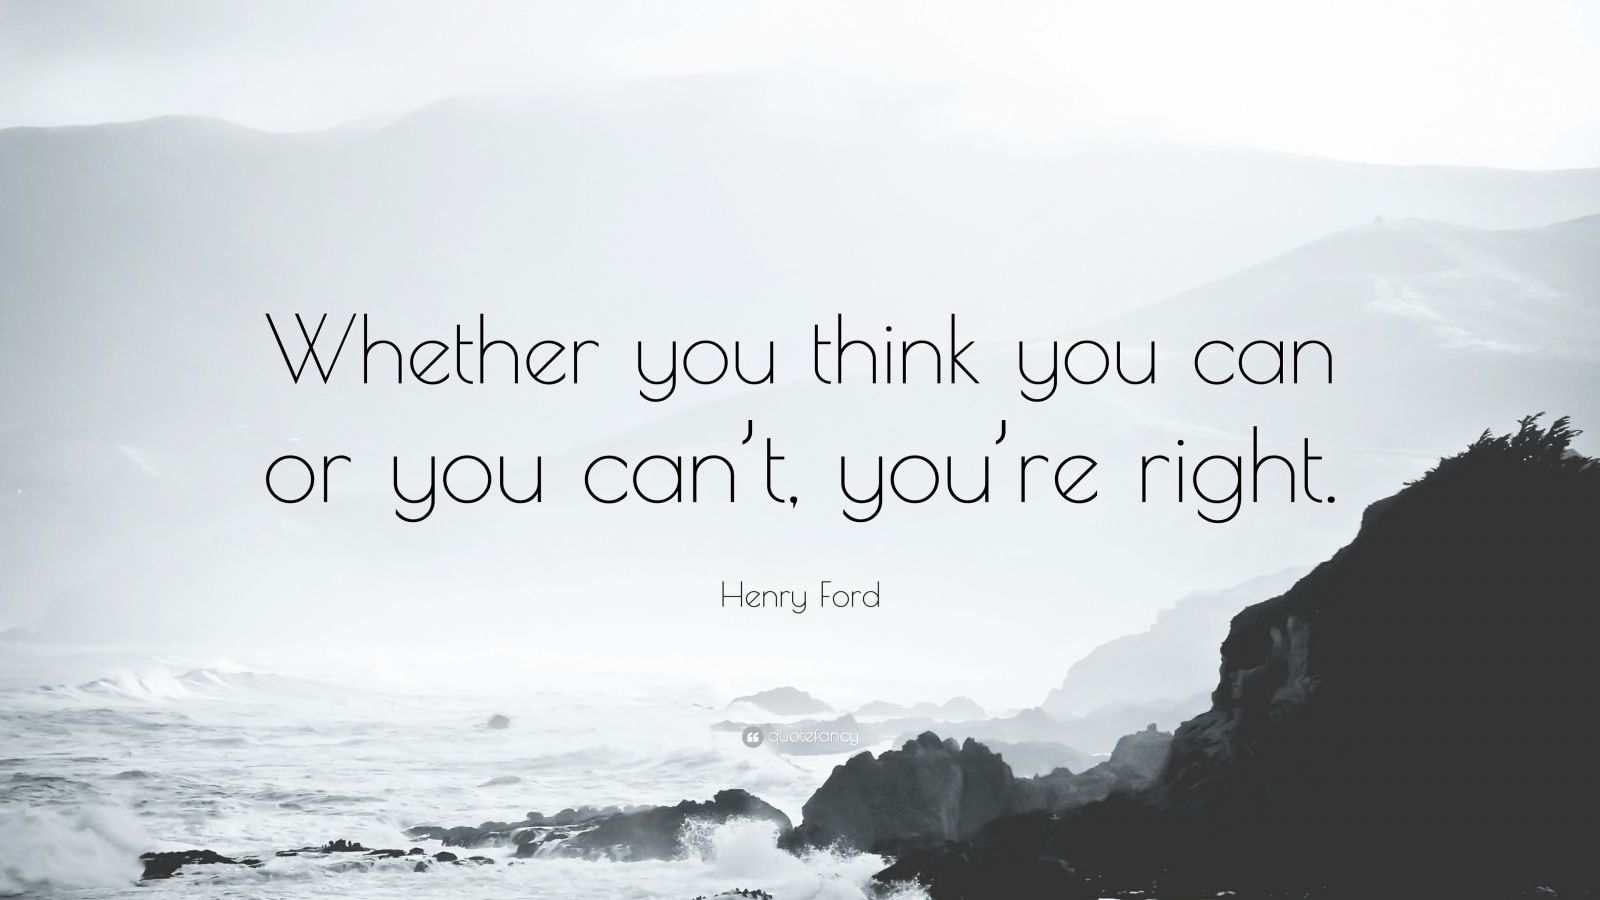 Do It You You Think It Do Or If You T Can You Right You Are Can Think